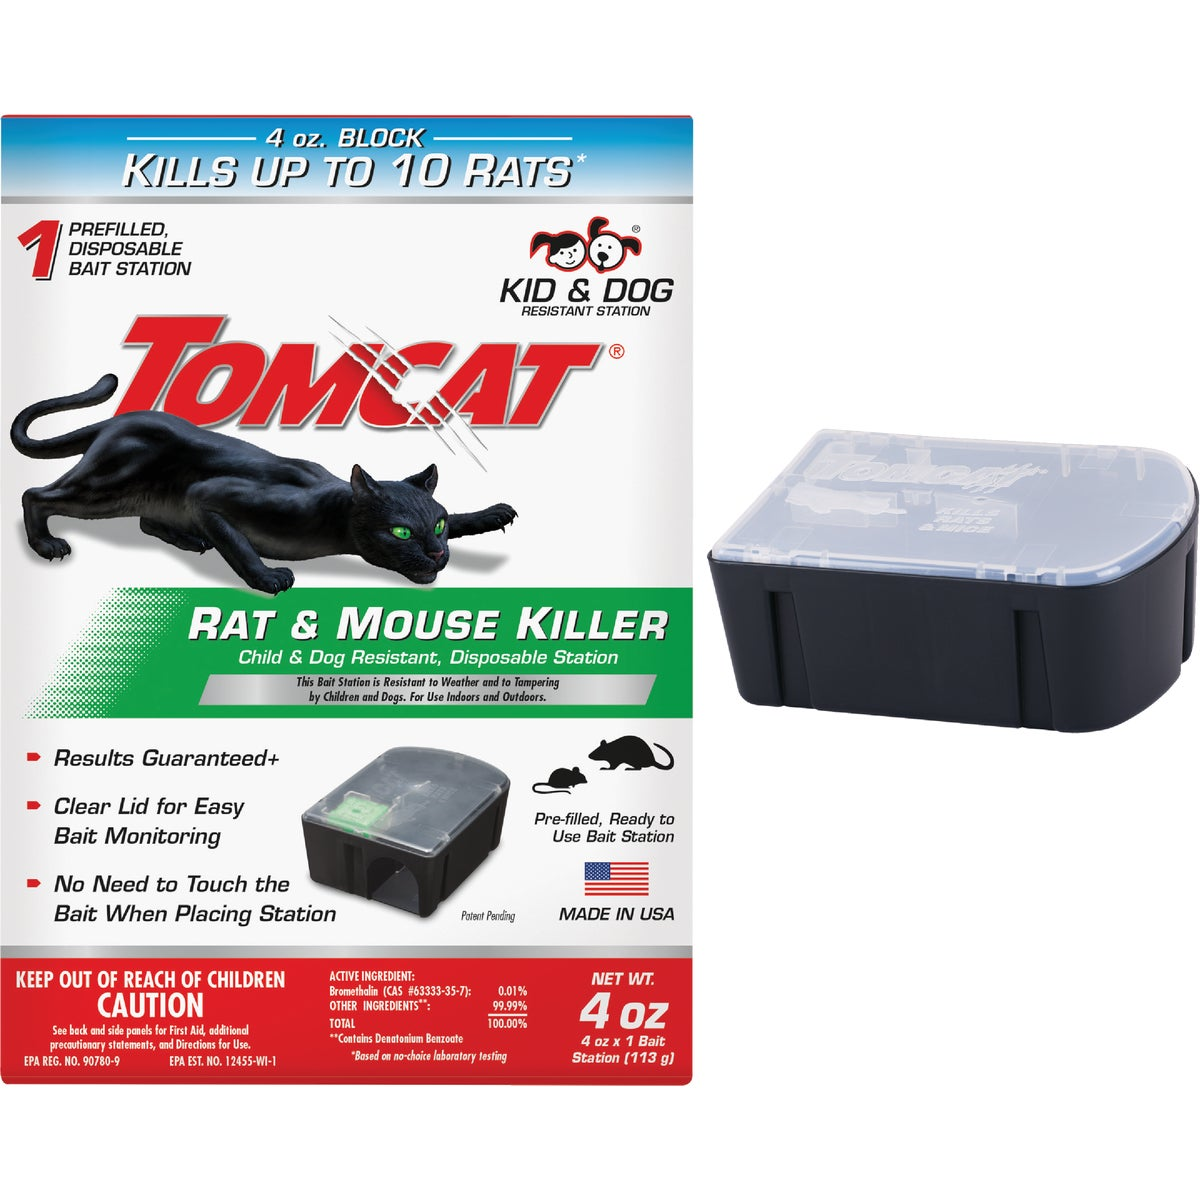 DISPOS RAT BAIT STATION